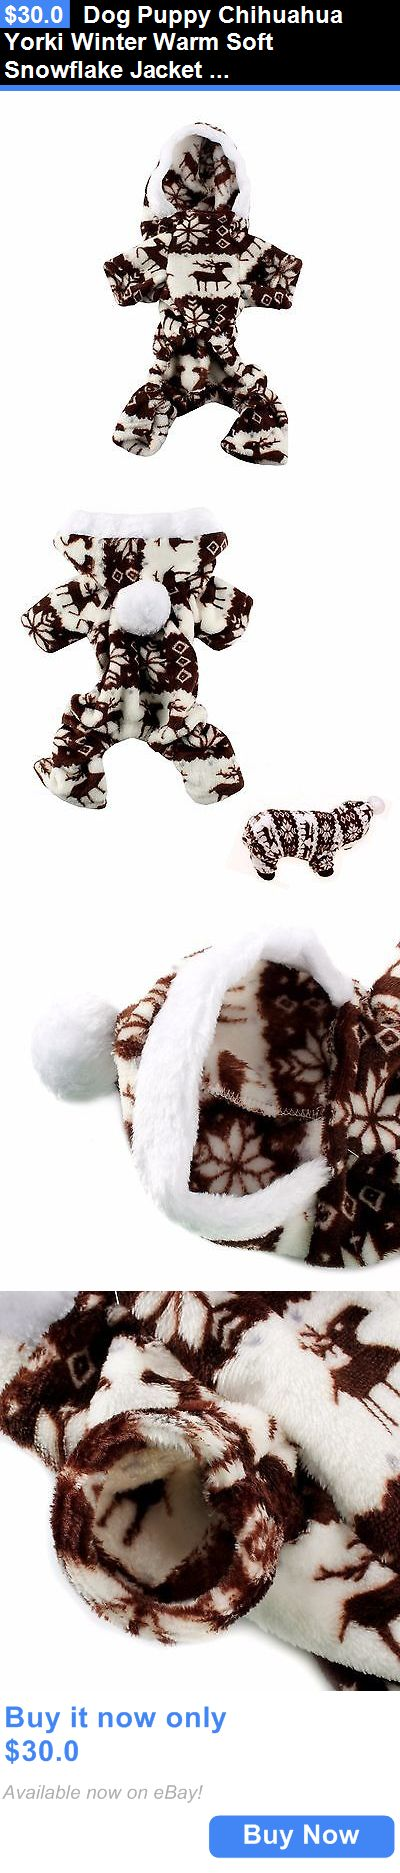 Pet Supplies: Dog Puppy Chihuahua Yorki Winter Warm Soft Snowflake Jacket Jumpsuit Hoodie BUY IT NOW ONLY: $30.0